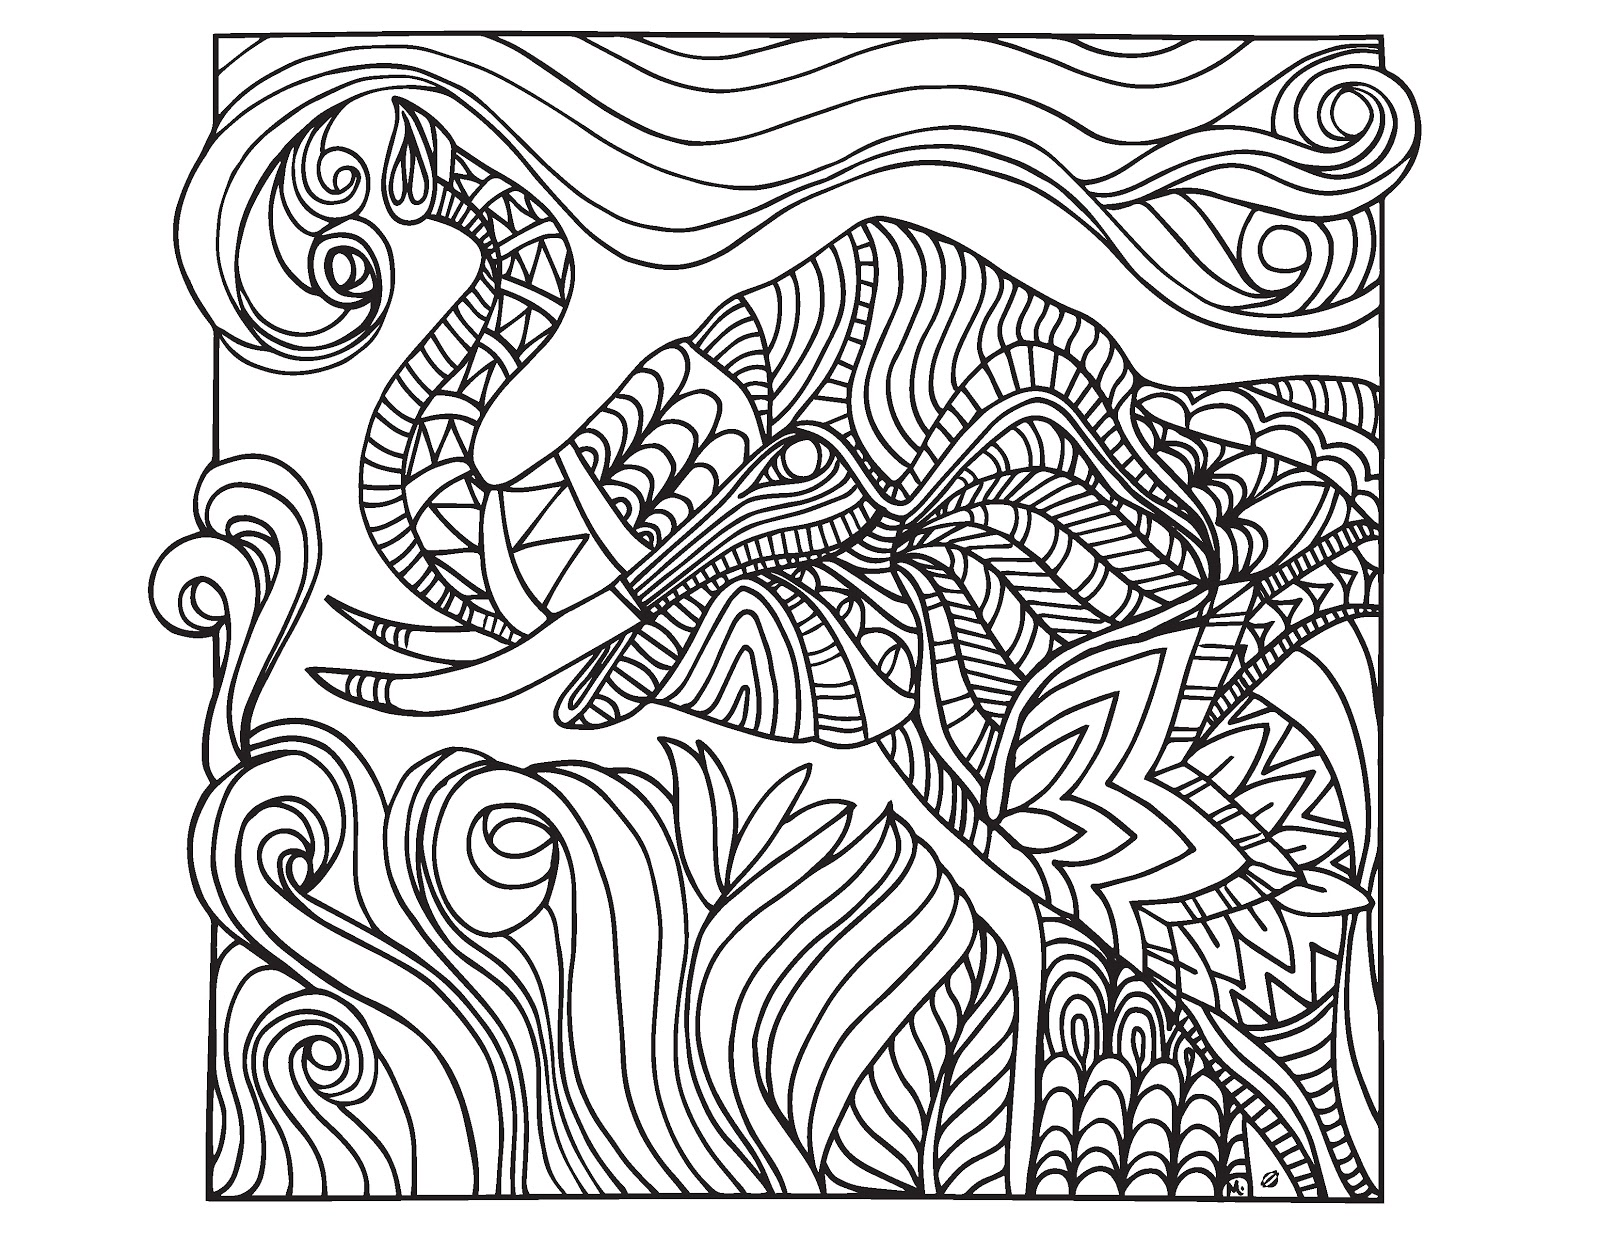 1600x1236 Creative Coloring Pages To Print Free For Adults And Kids